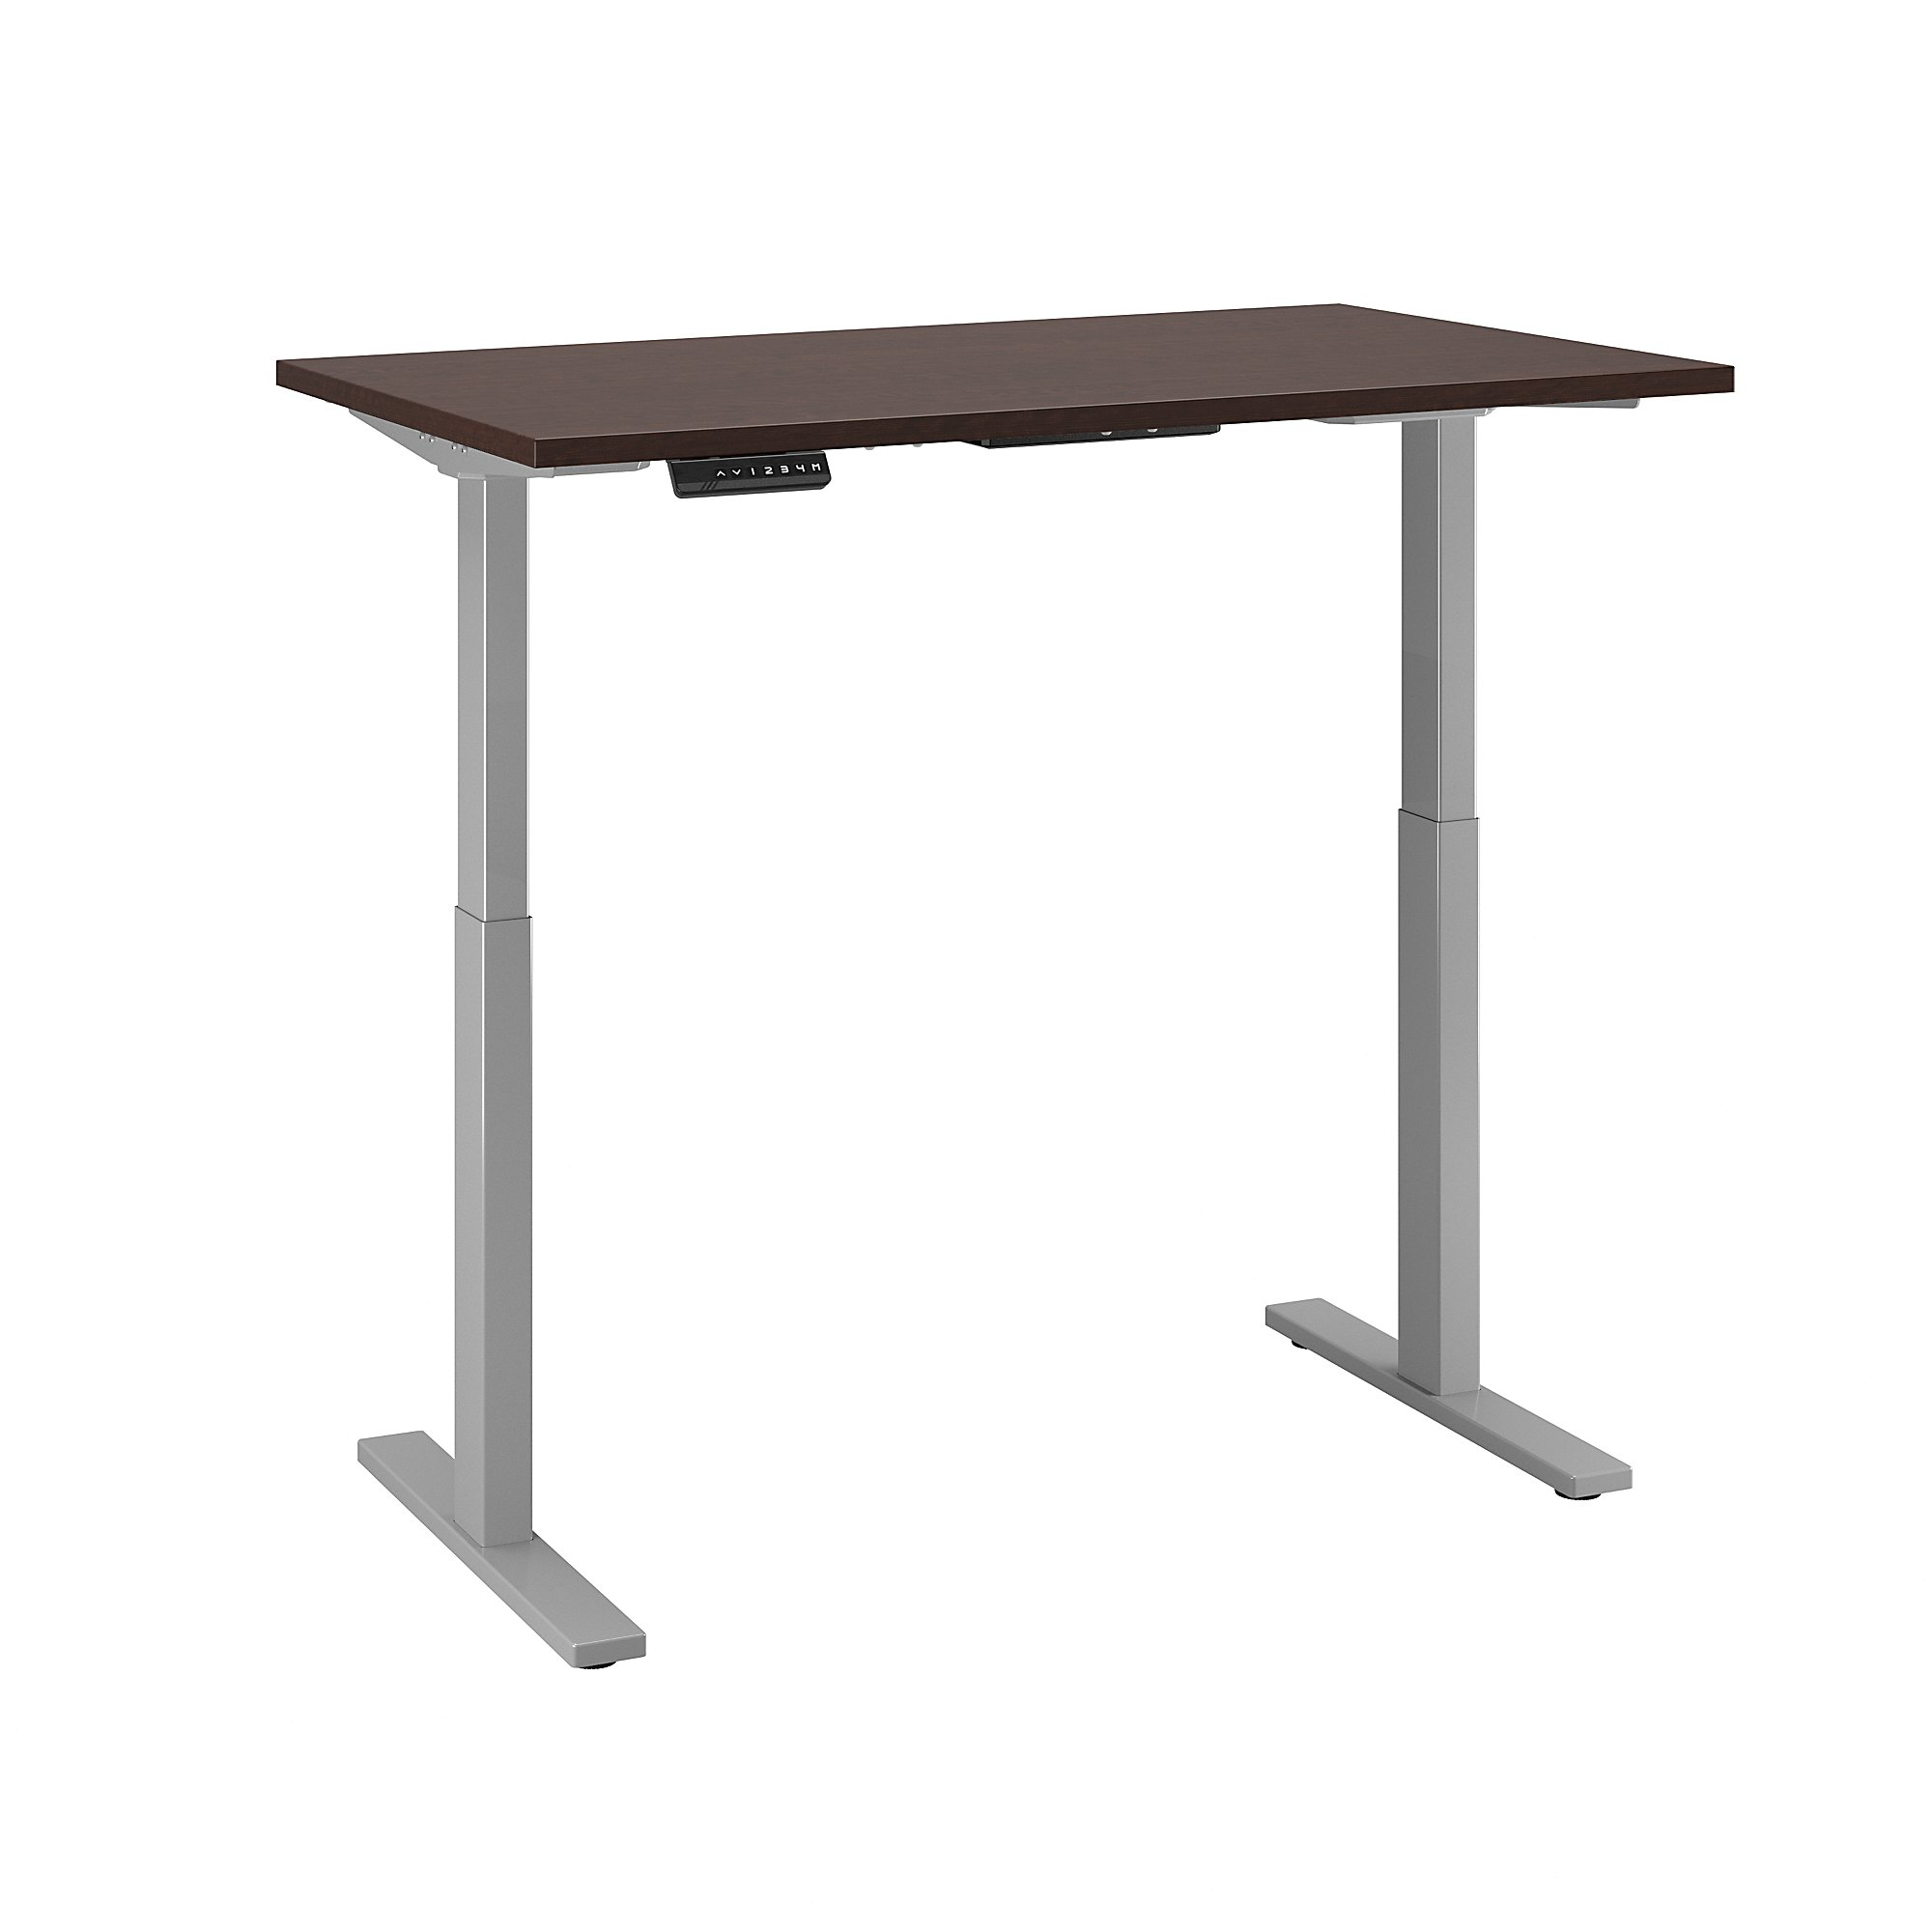 Sit stand desk adjustable CUB M6S4830MRSSK FBB